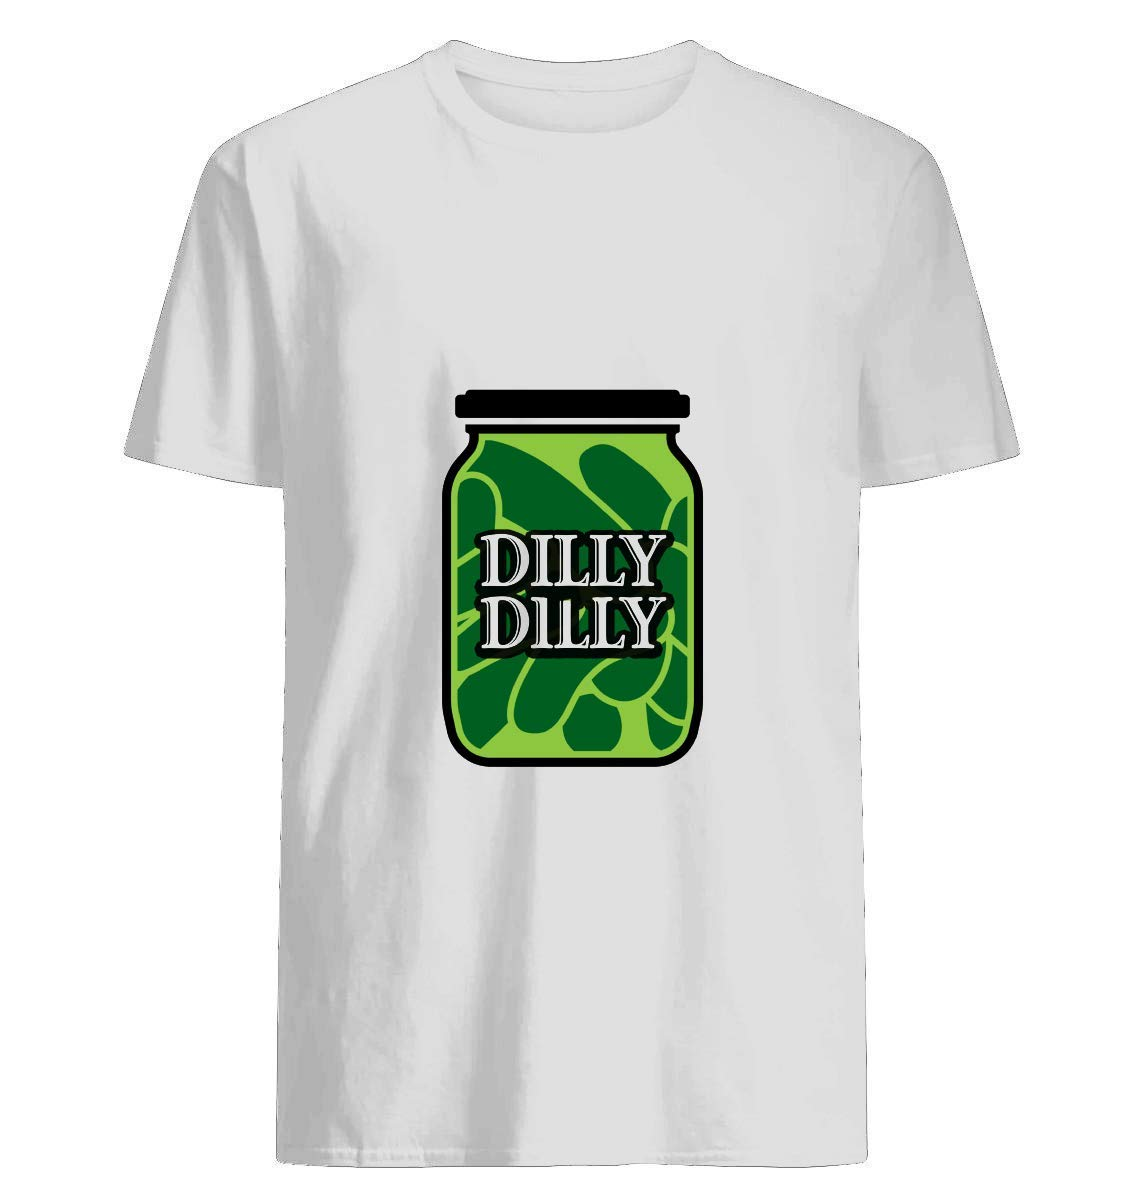 Dilly Dilly 14 Shirts